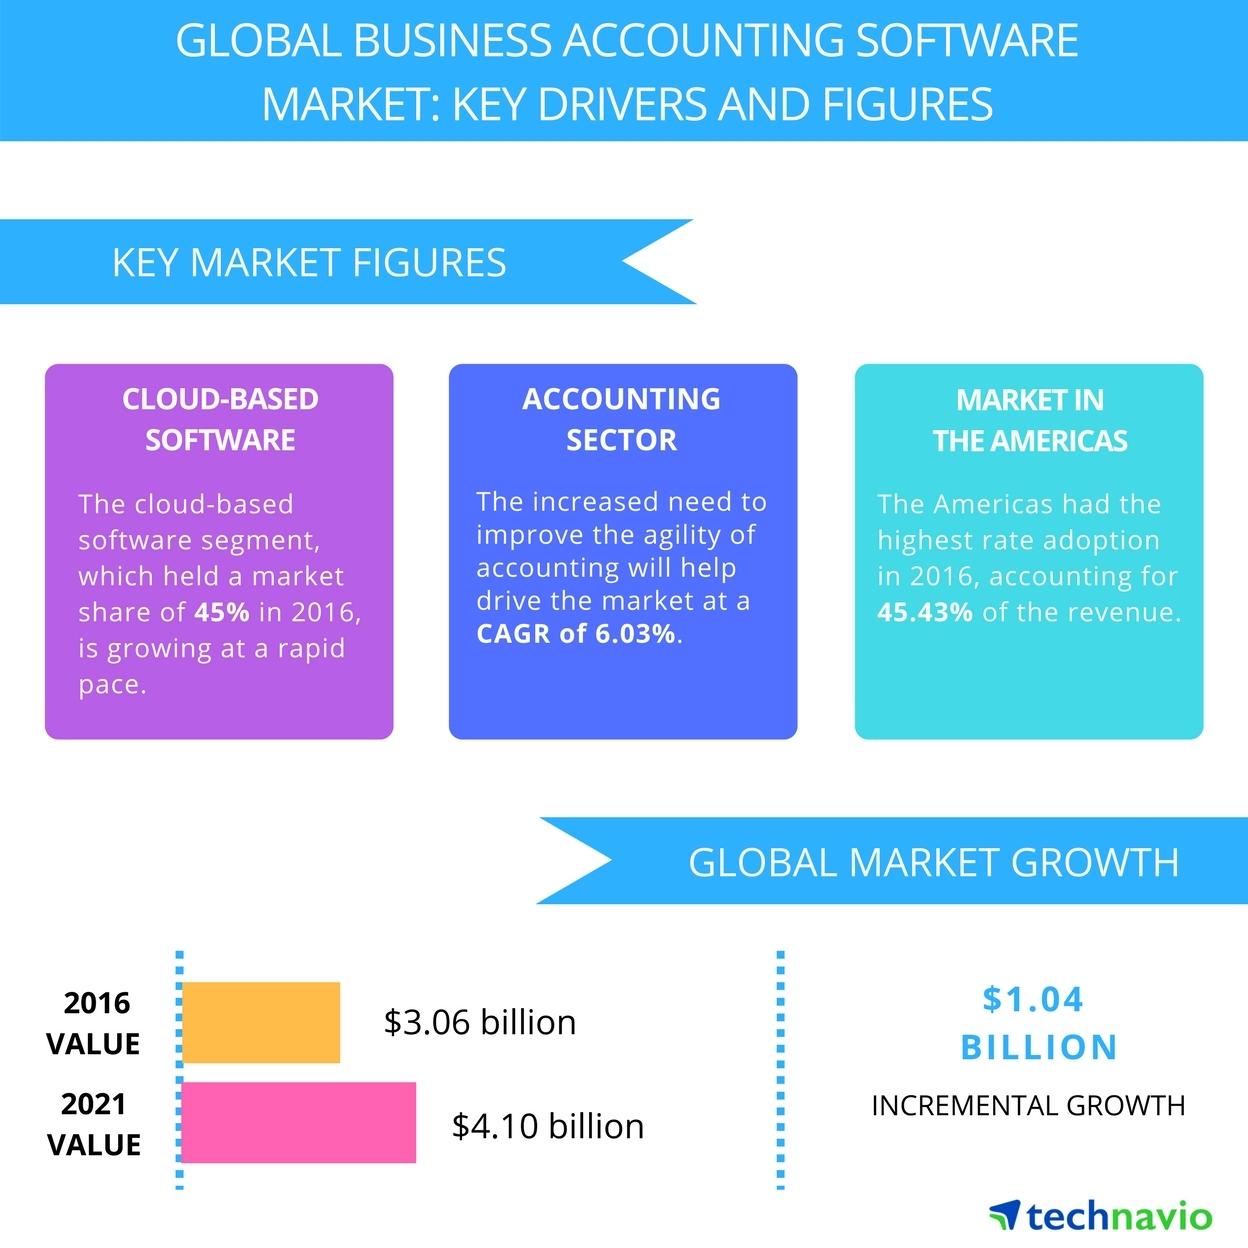 Top 3 Emerging Trends Impacting the Global Business Accounting ...